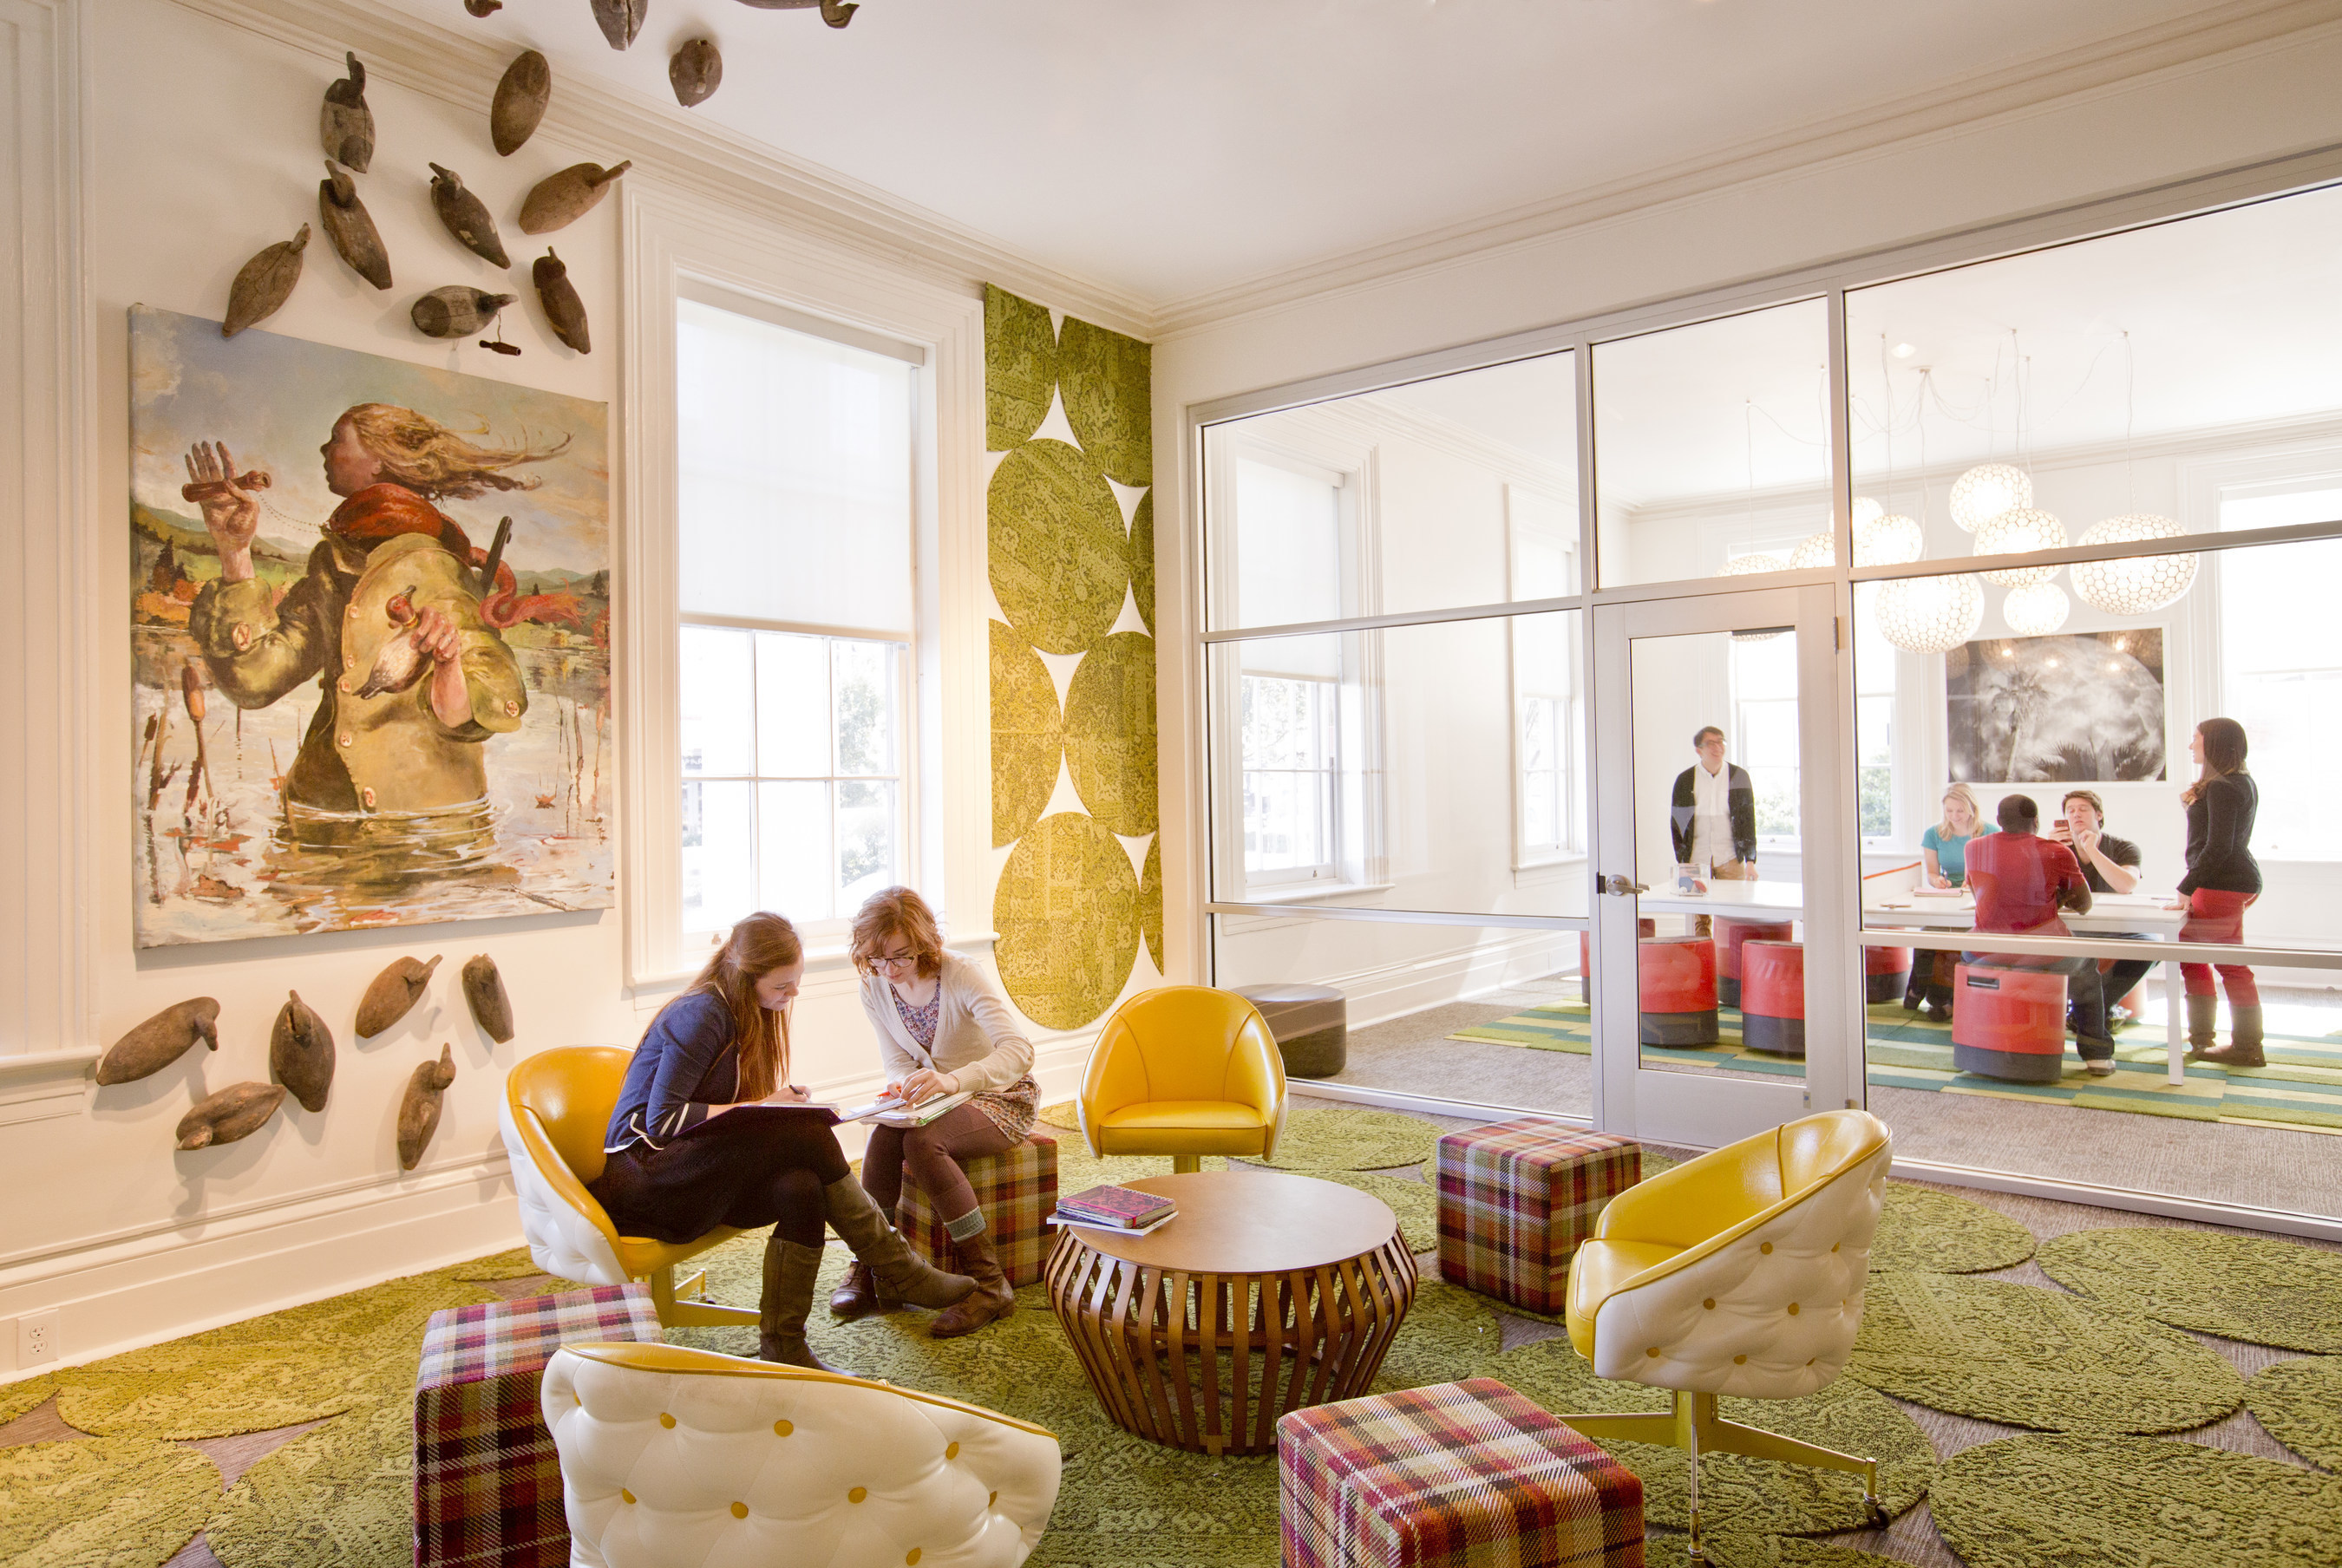 SCAD Interior Design Programs Ranked No 1 In The Nation